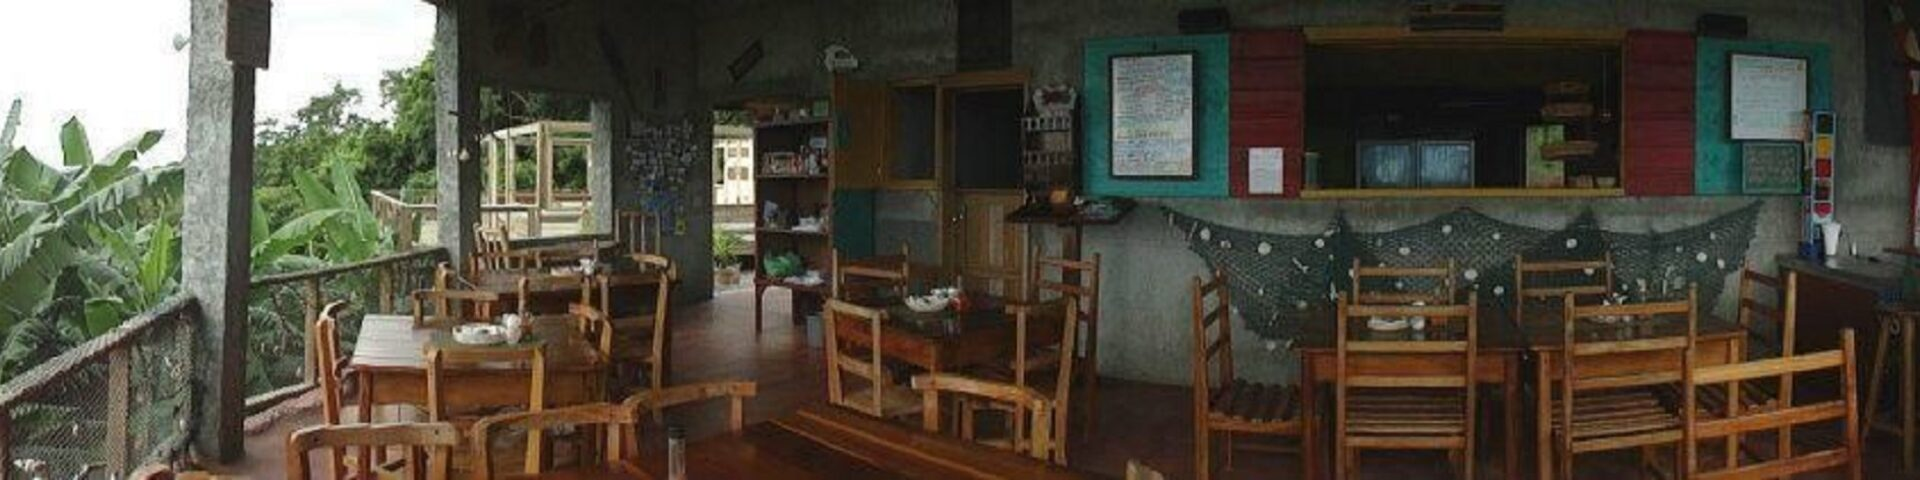 Well known Cal's Cantina is for sale in Roatan